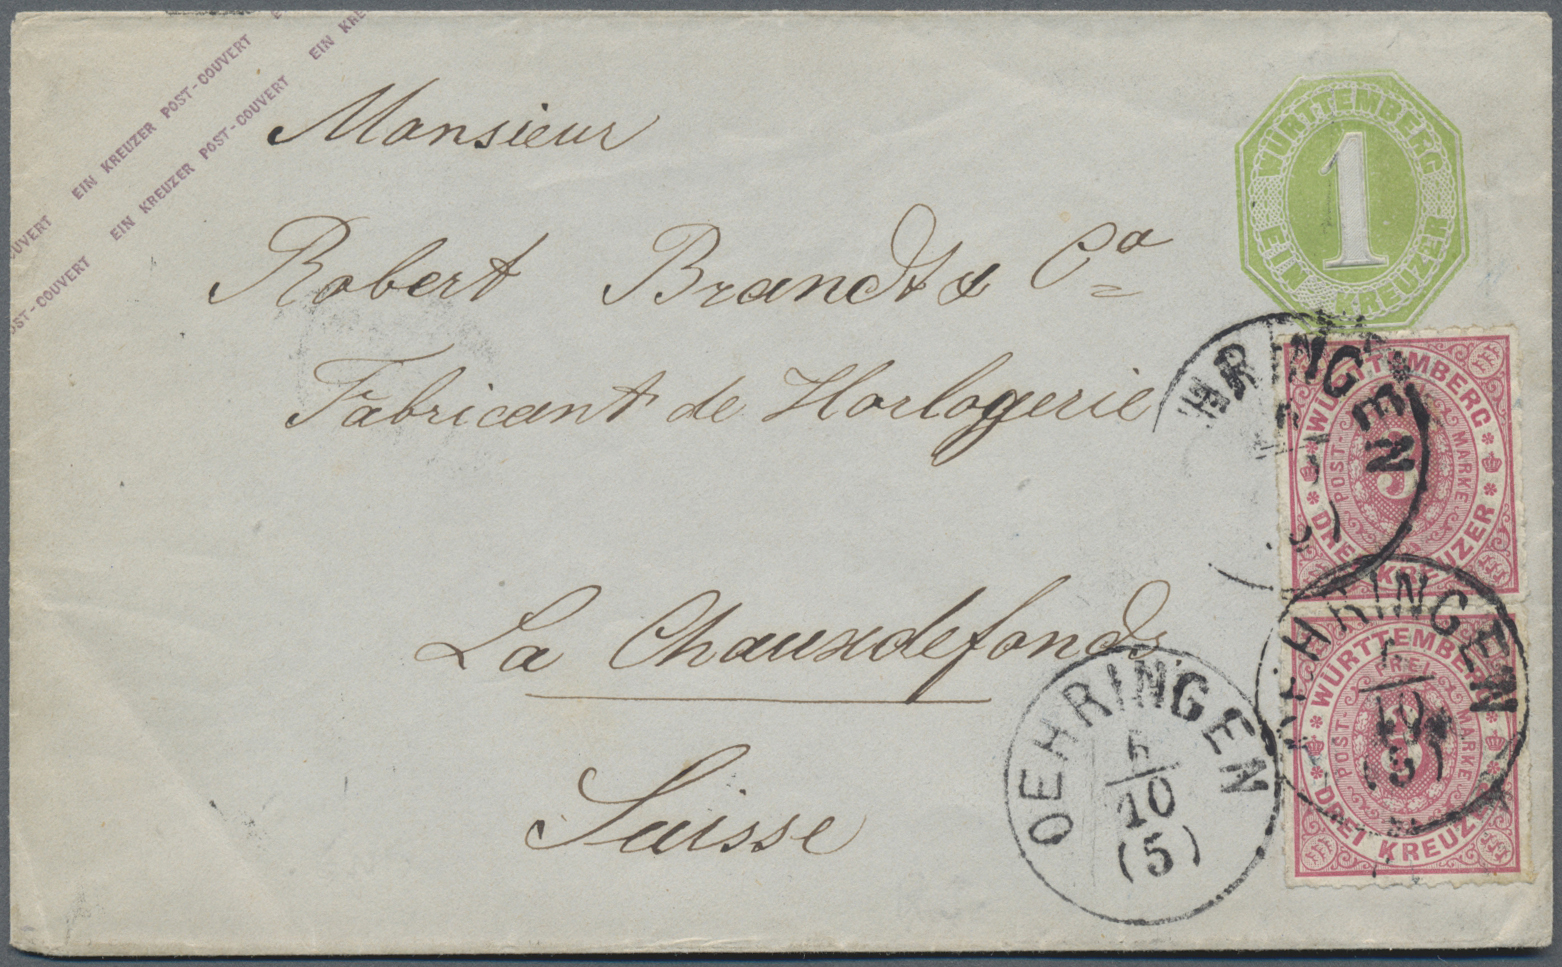 Lot 13908 - Württemberg - Marken und Briefe  -  Auktionshaus Christoph Gärtner GmbH & Co. KG Sale #46 Single lots Germany - and picture post cards